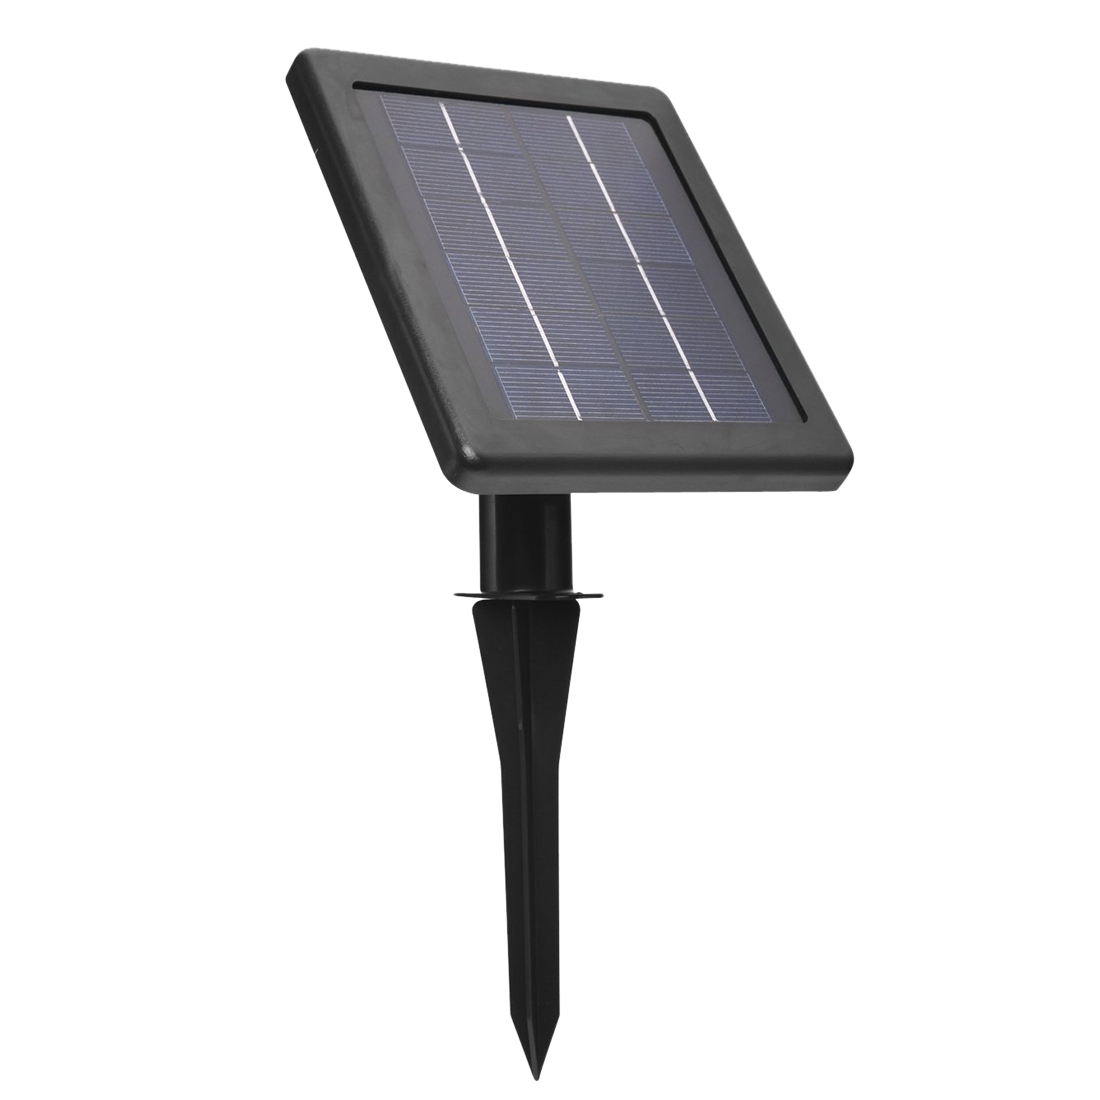 12w flood garden spot lamp source outdoor yard road street led lights - Rechargeable Waterproof Solar Powered 30 Led Spot Light White Lamp With Lithium Battery Inside For Lawn